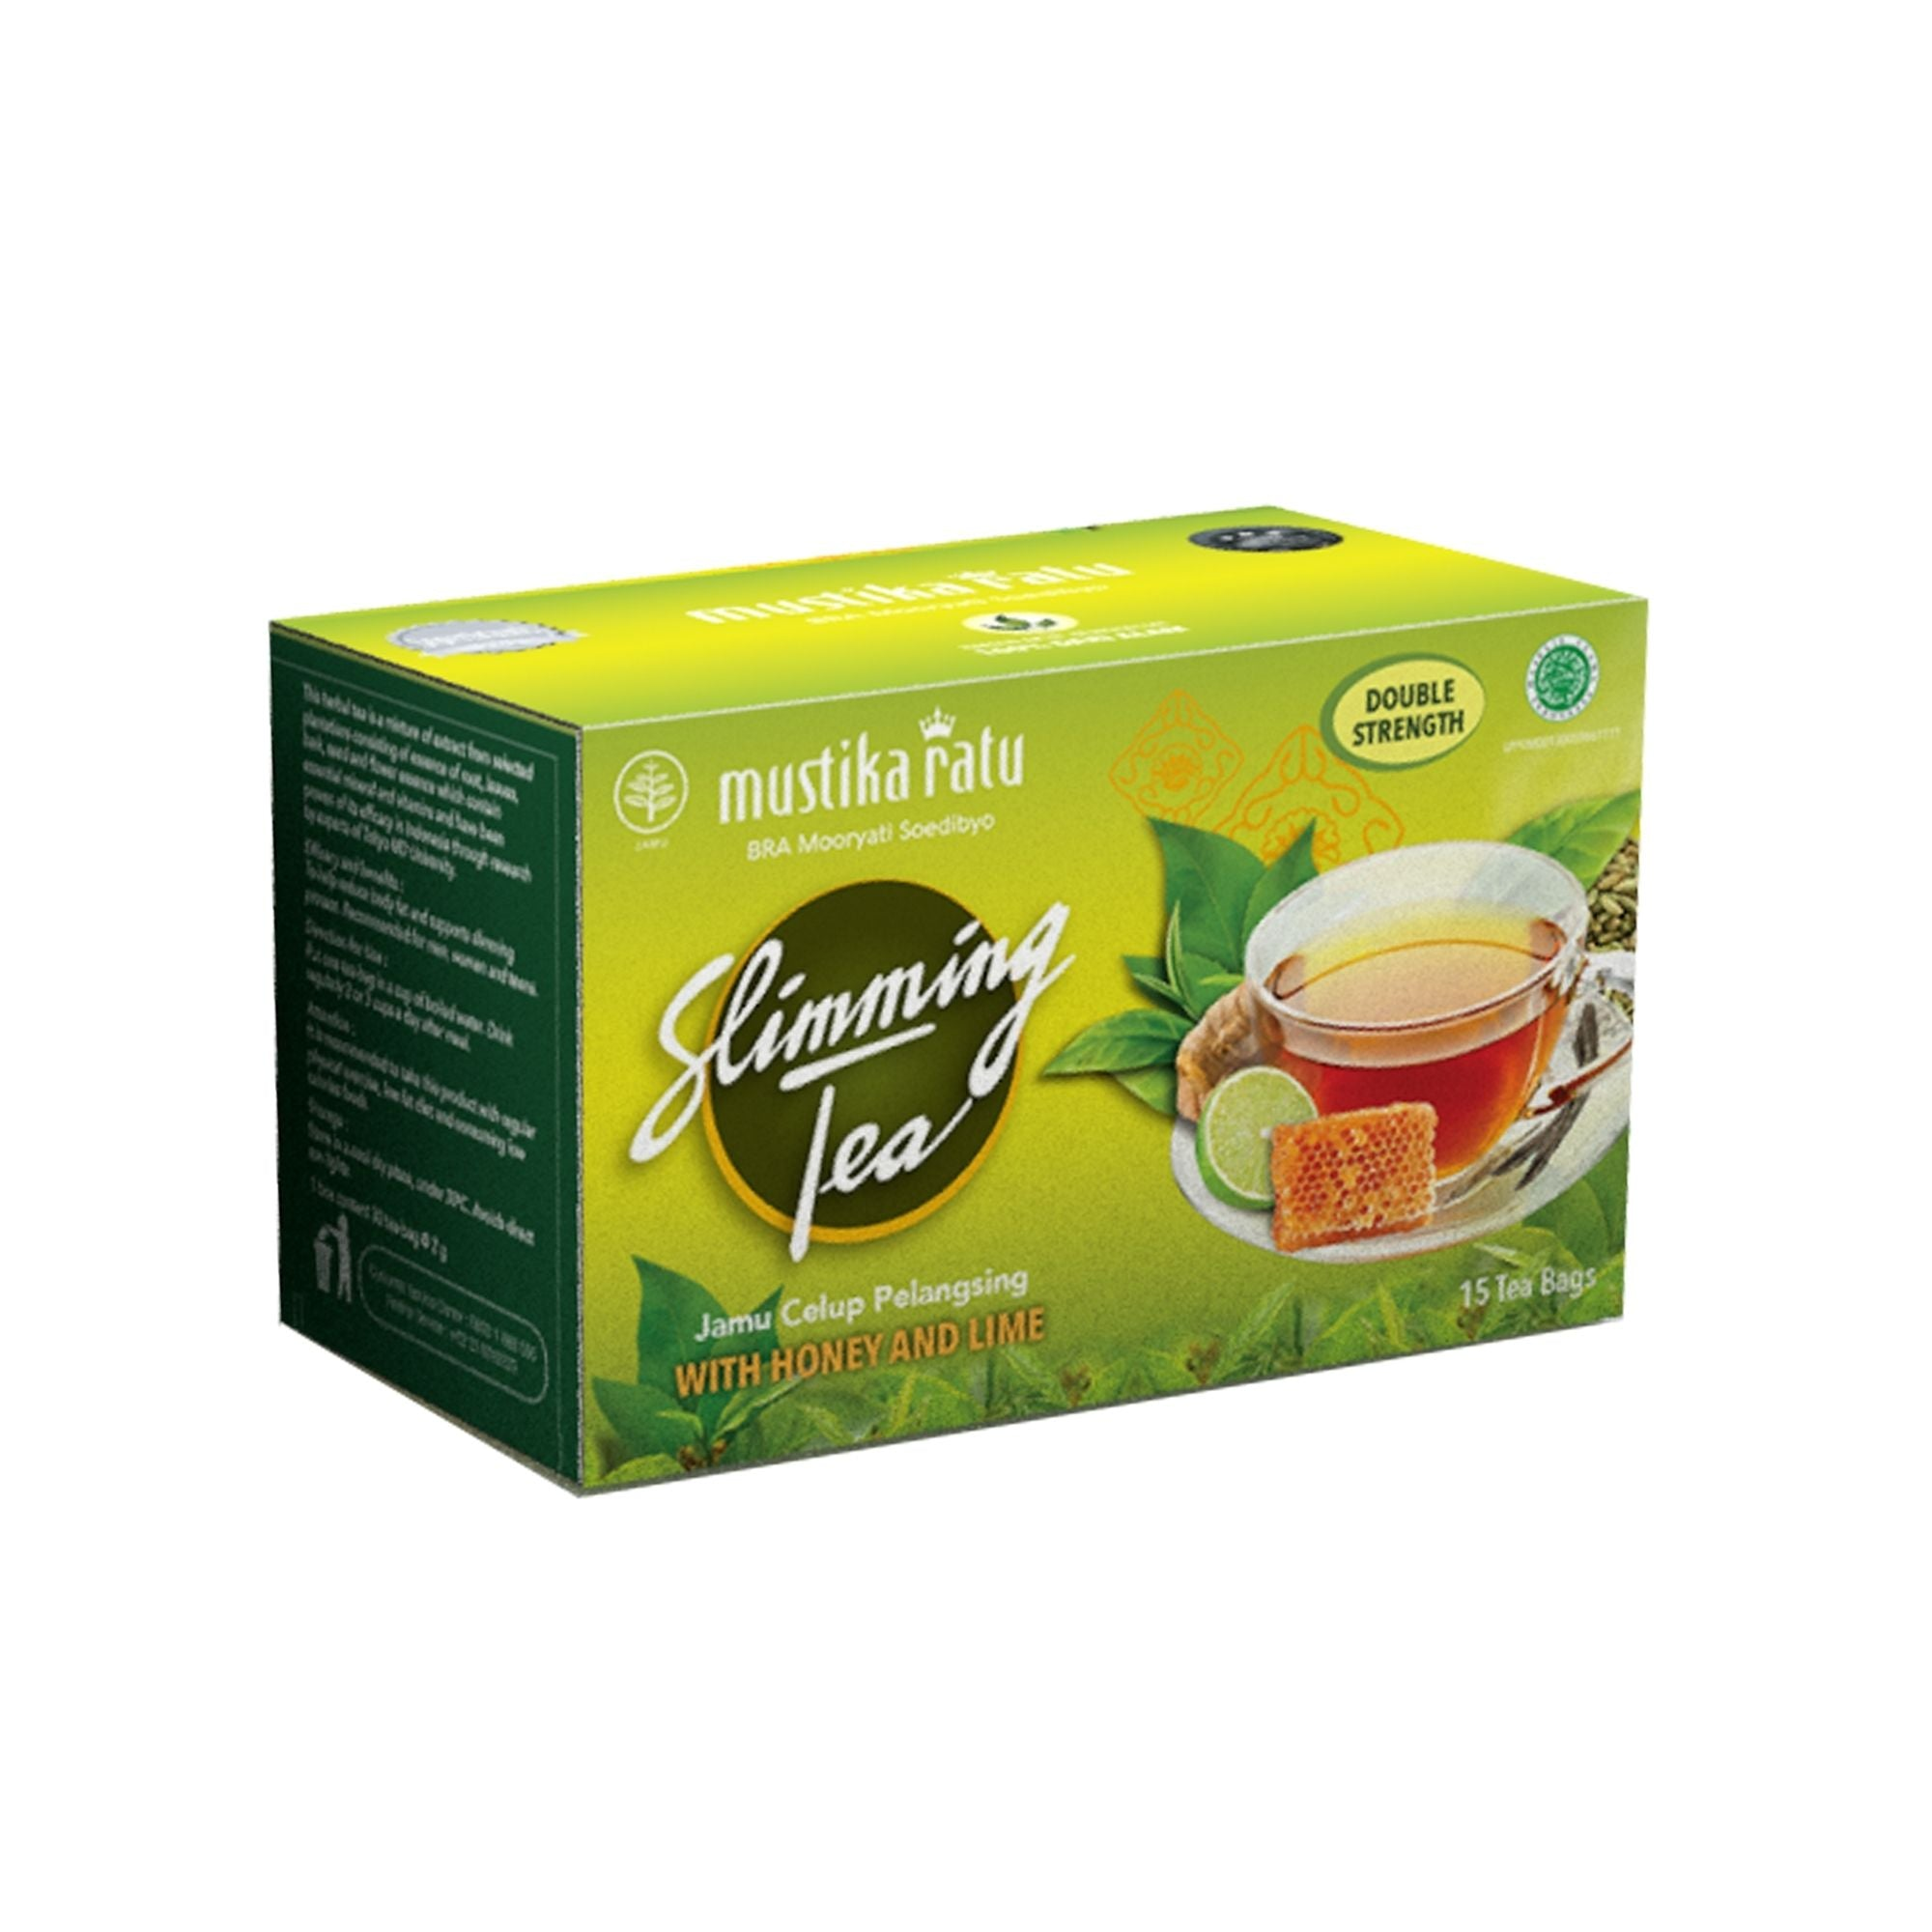 Slimming Tea with Honey & Lime ( 15 tea bags - Mustika Ratu )